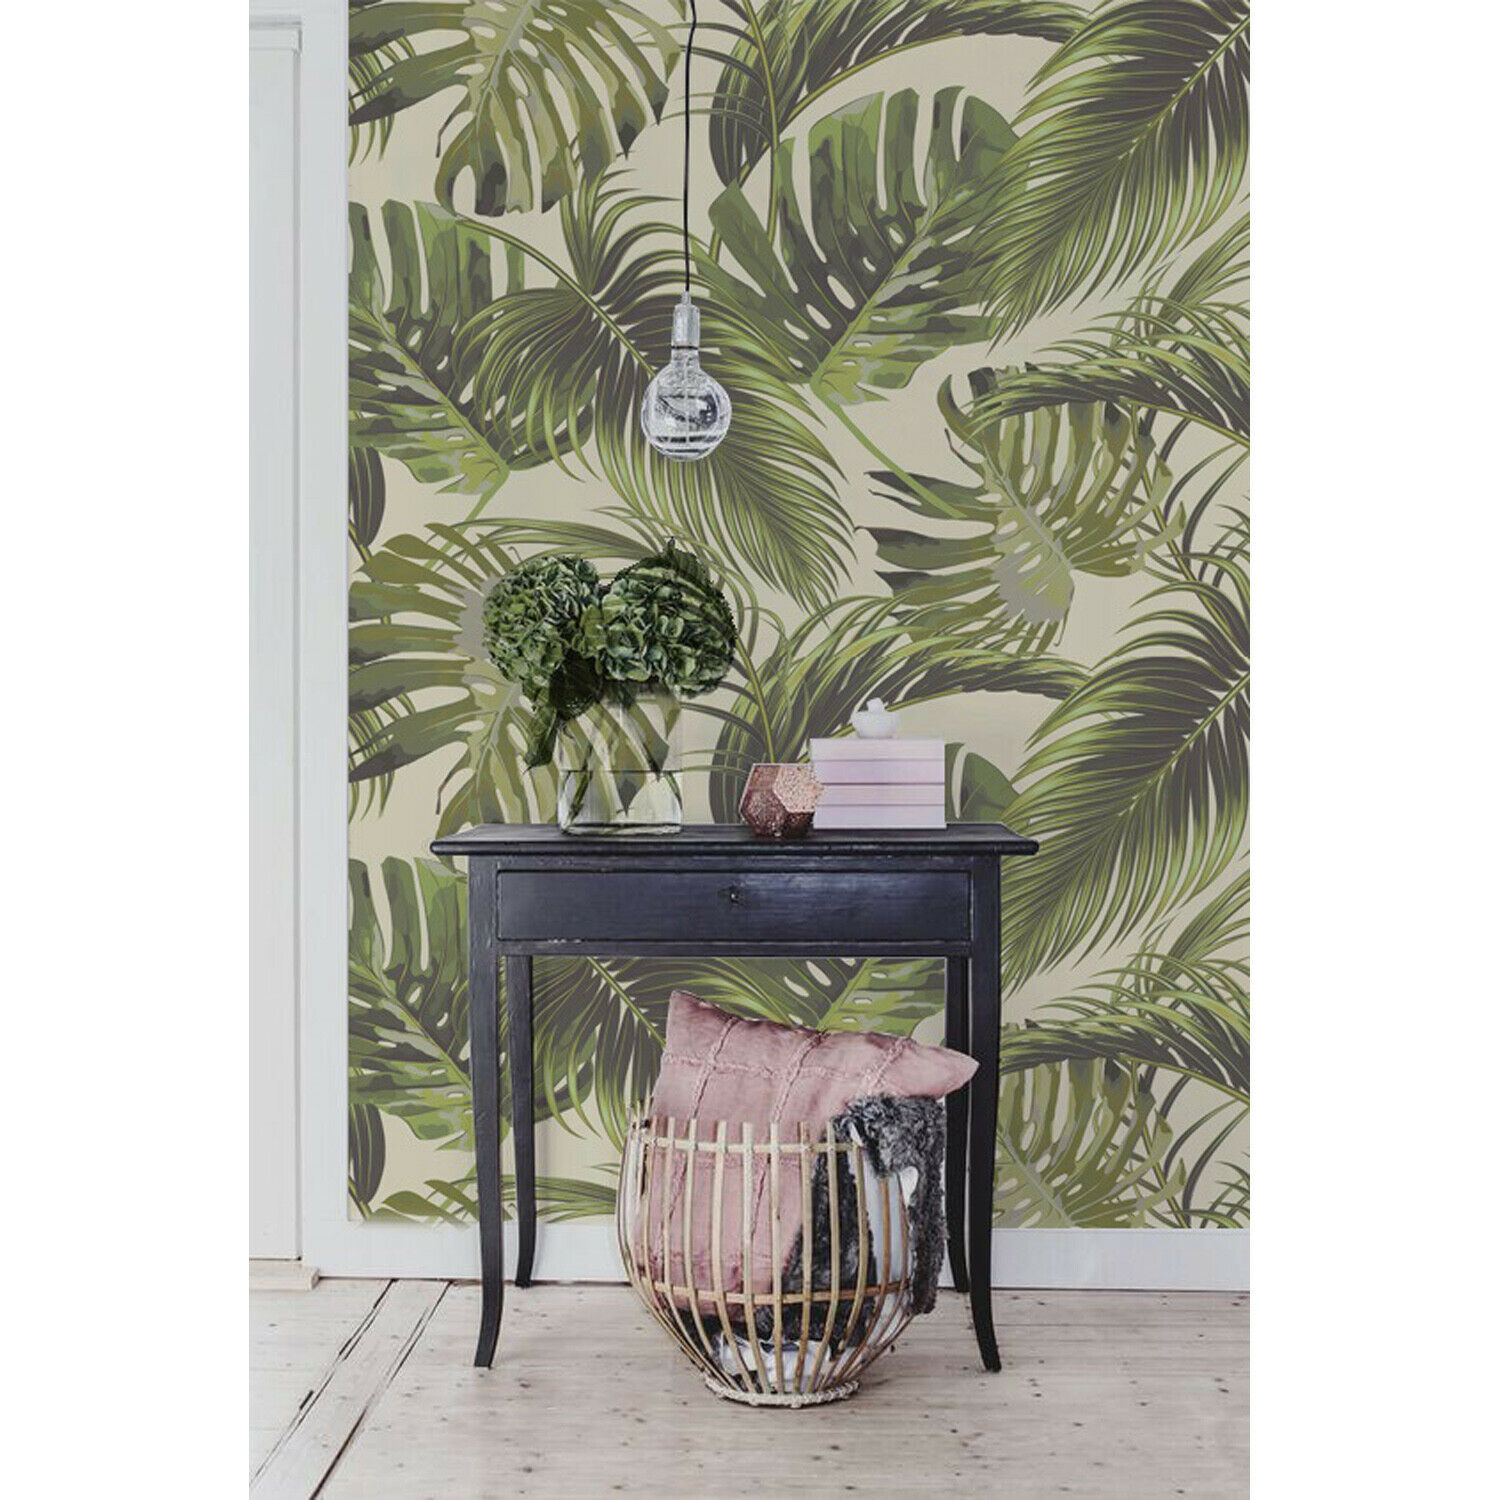 Tropical Paradise design decal vintage art Self adhesive Wall Mural Wallpaper